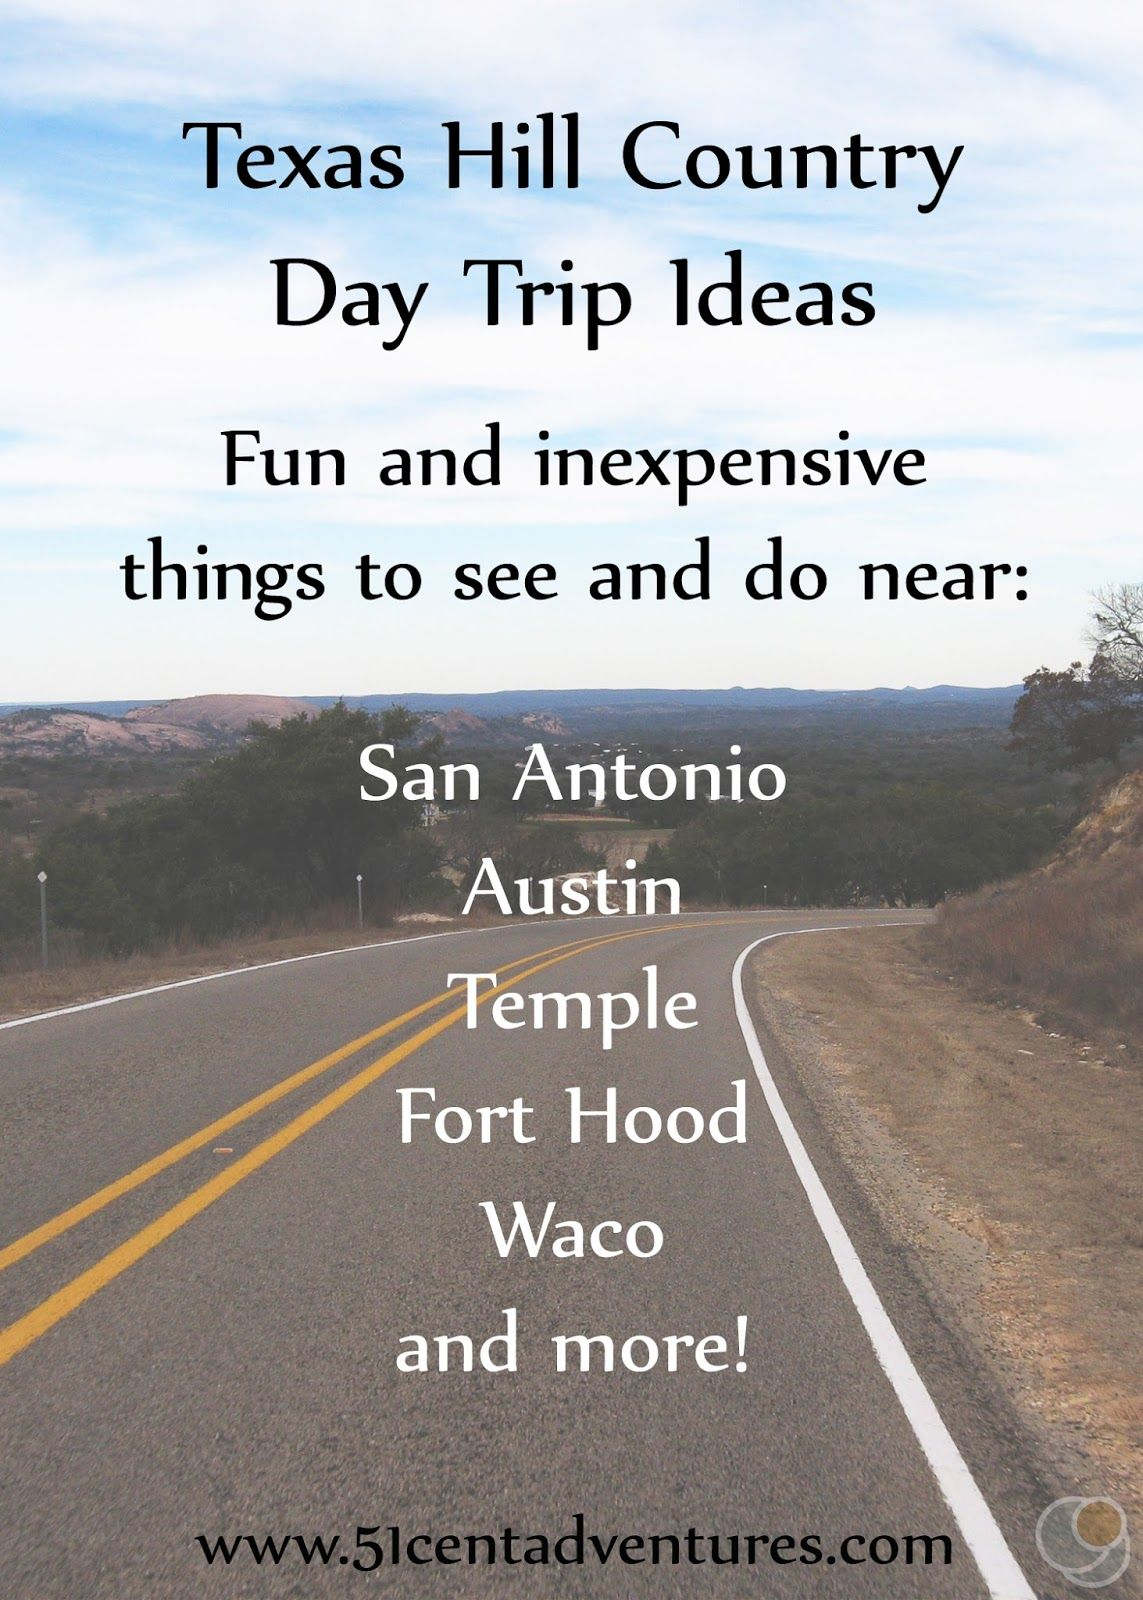 Texas Hill Country Day Trip Ideas Texas Hill Country